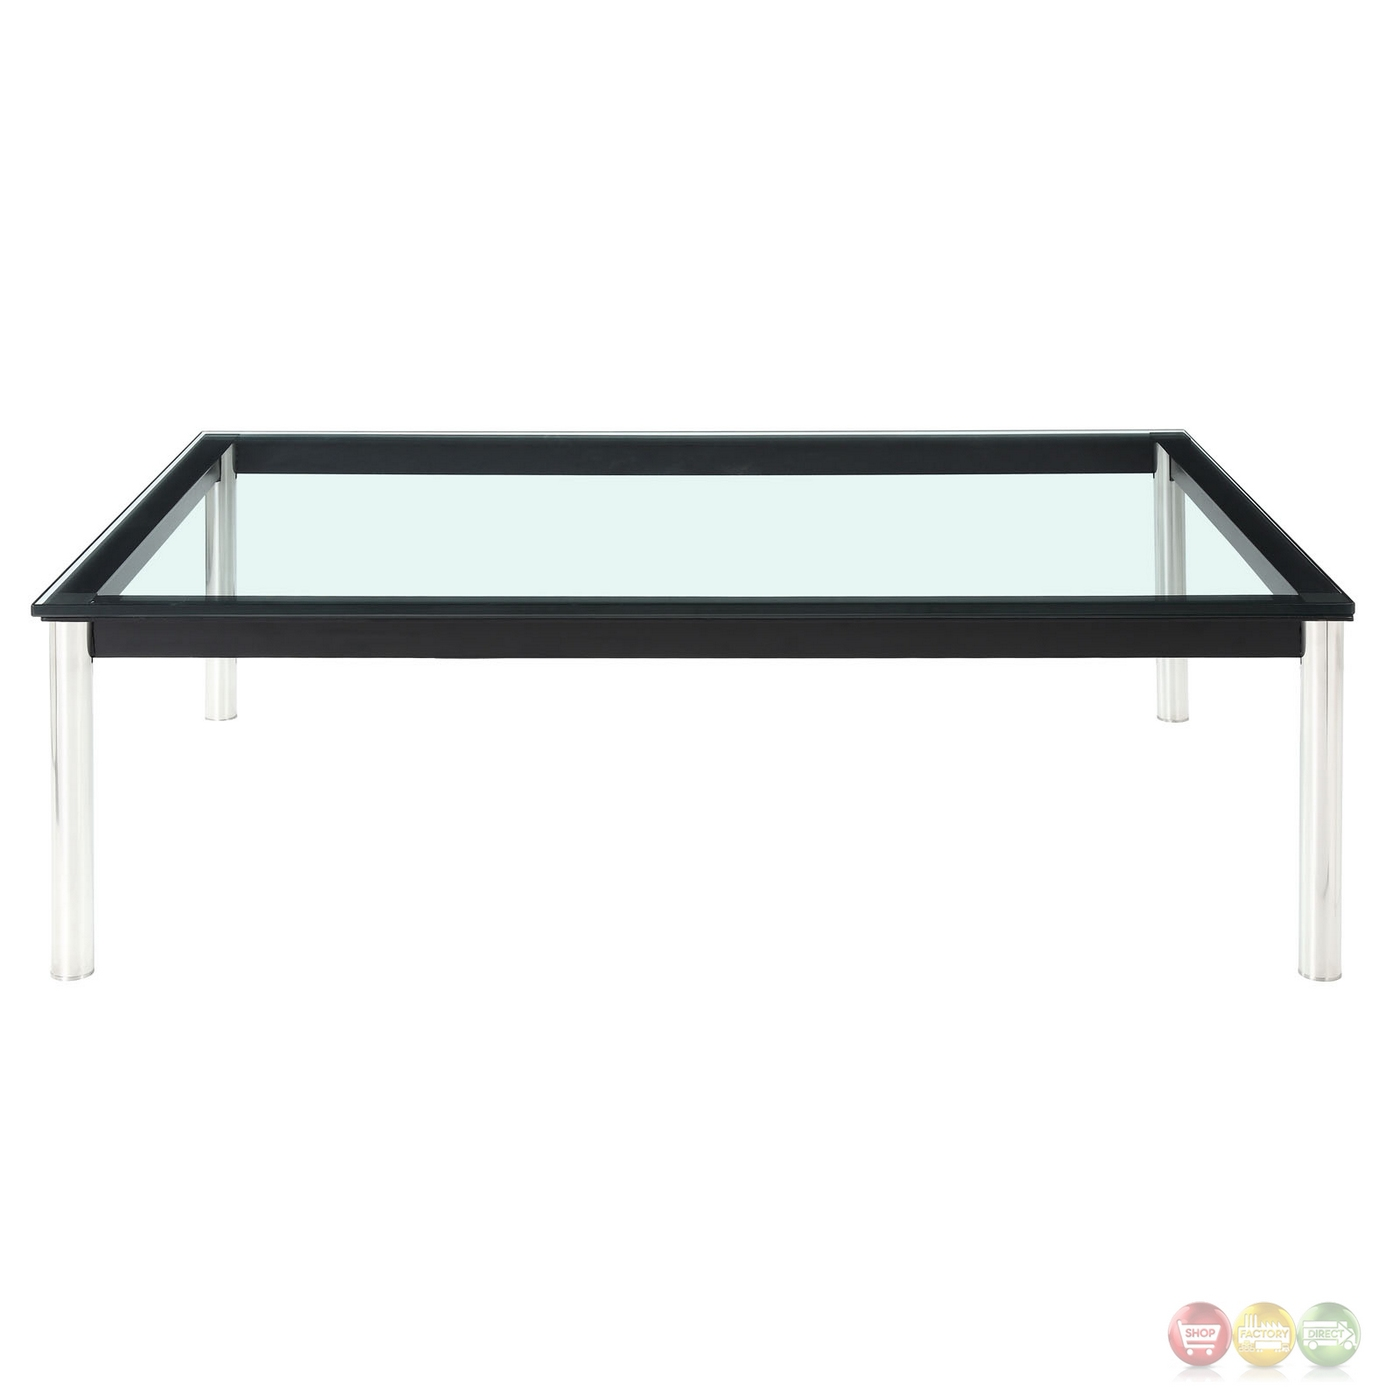 Charles modern 47 rectangle glass top coffee table w for Metal frame glass coffee table